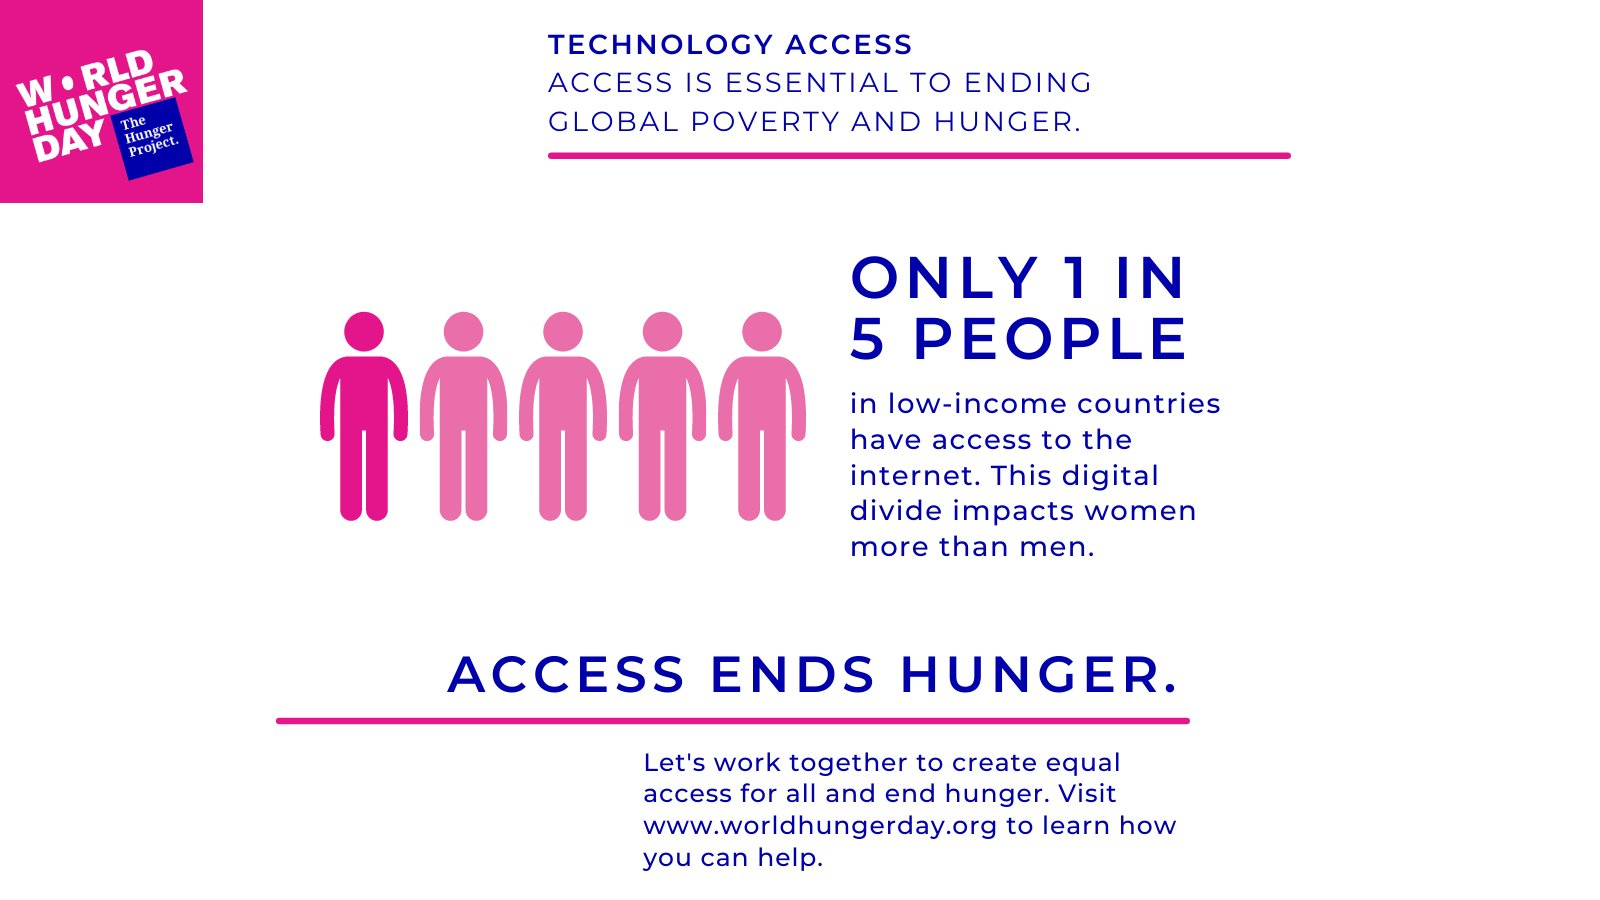 Digital technologies can help end global poverty and hunger faster. The Internet is a unique platform for innovation, creativity, economic opportunity and social inclusion, which can unlock limitless human capabilities. We must close the #DigitalDivide. #AccessEndsHunger https://t.co/6LujvIW6ID